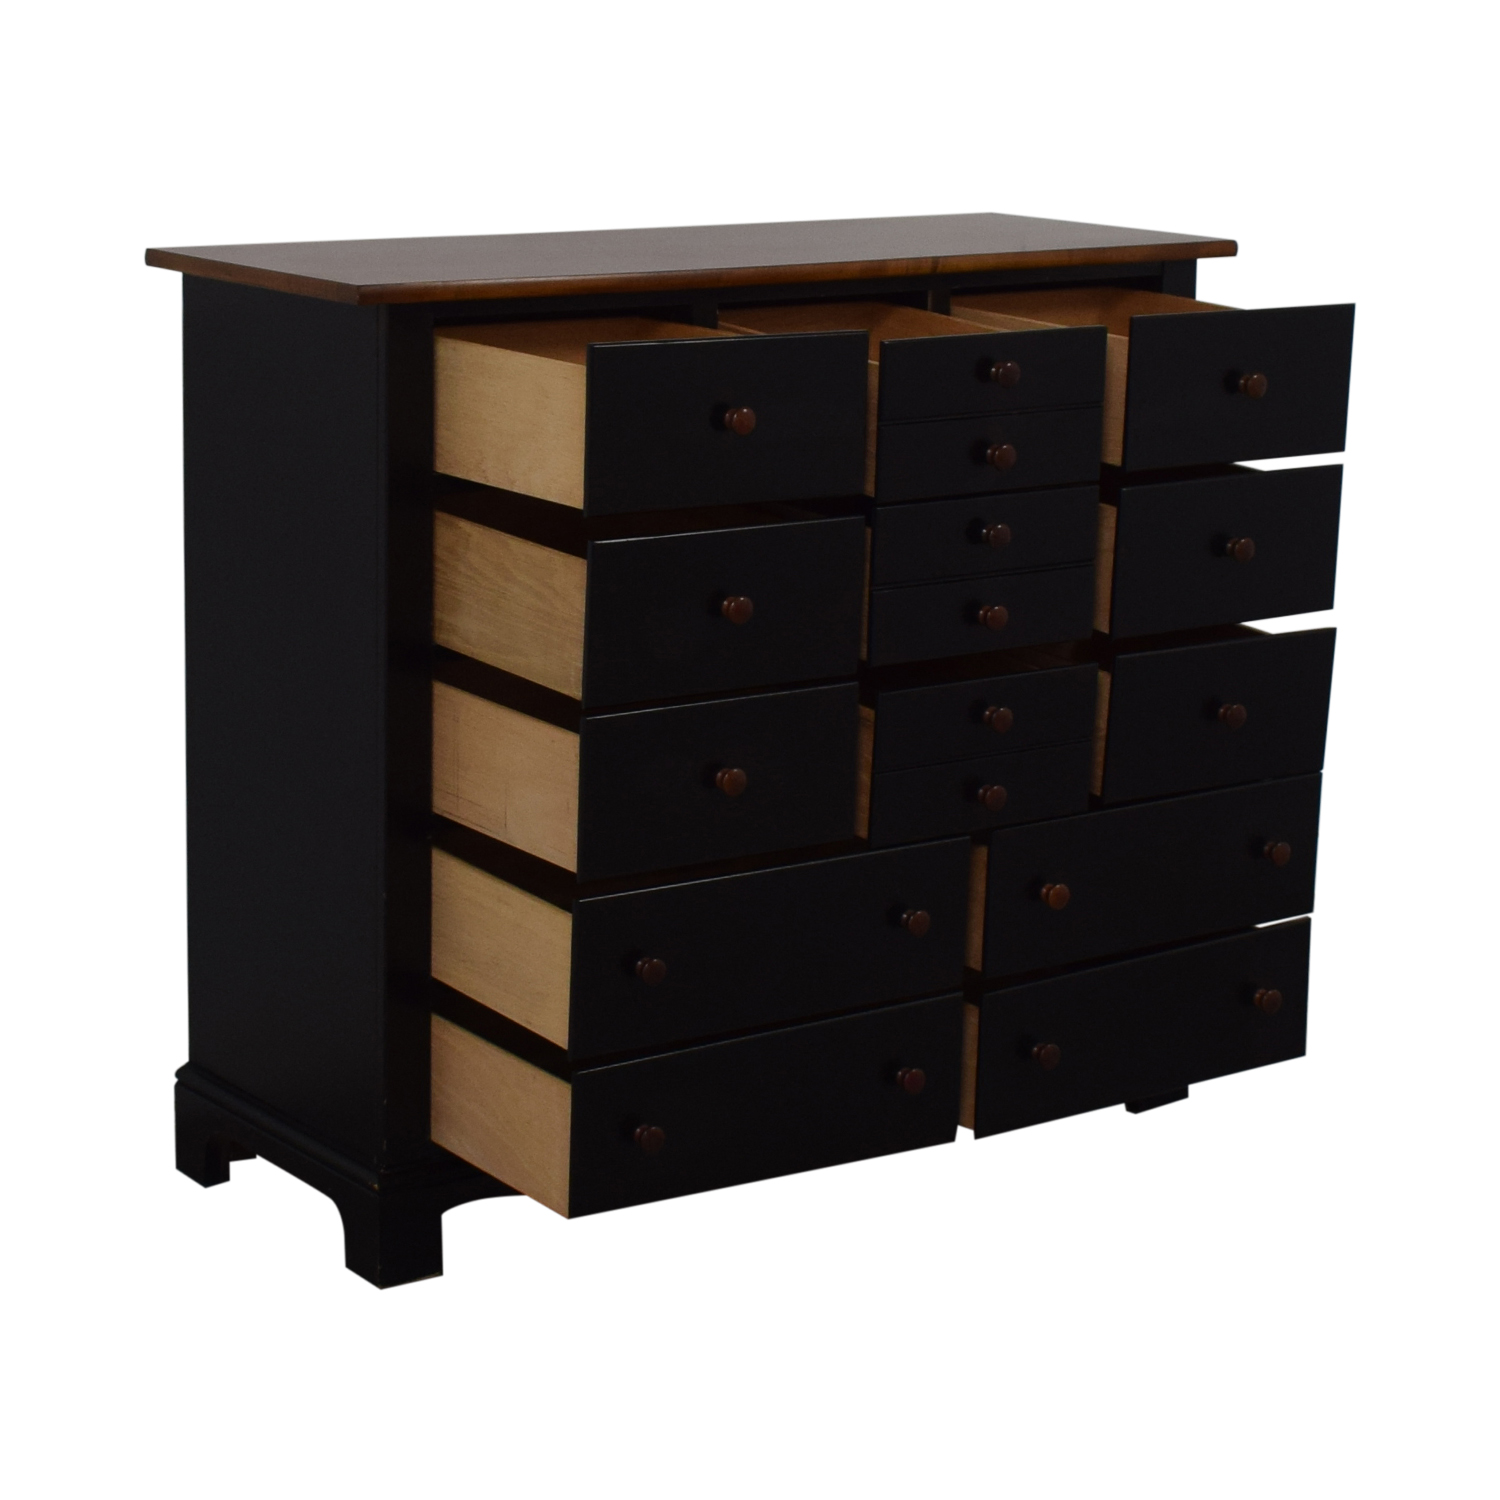 Stanley Furniture Stanley Furniture Chest of Thirteen Drawers